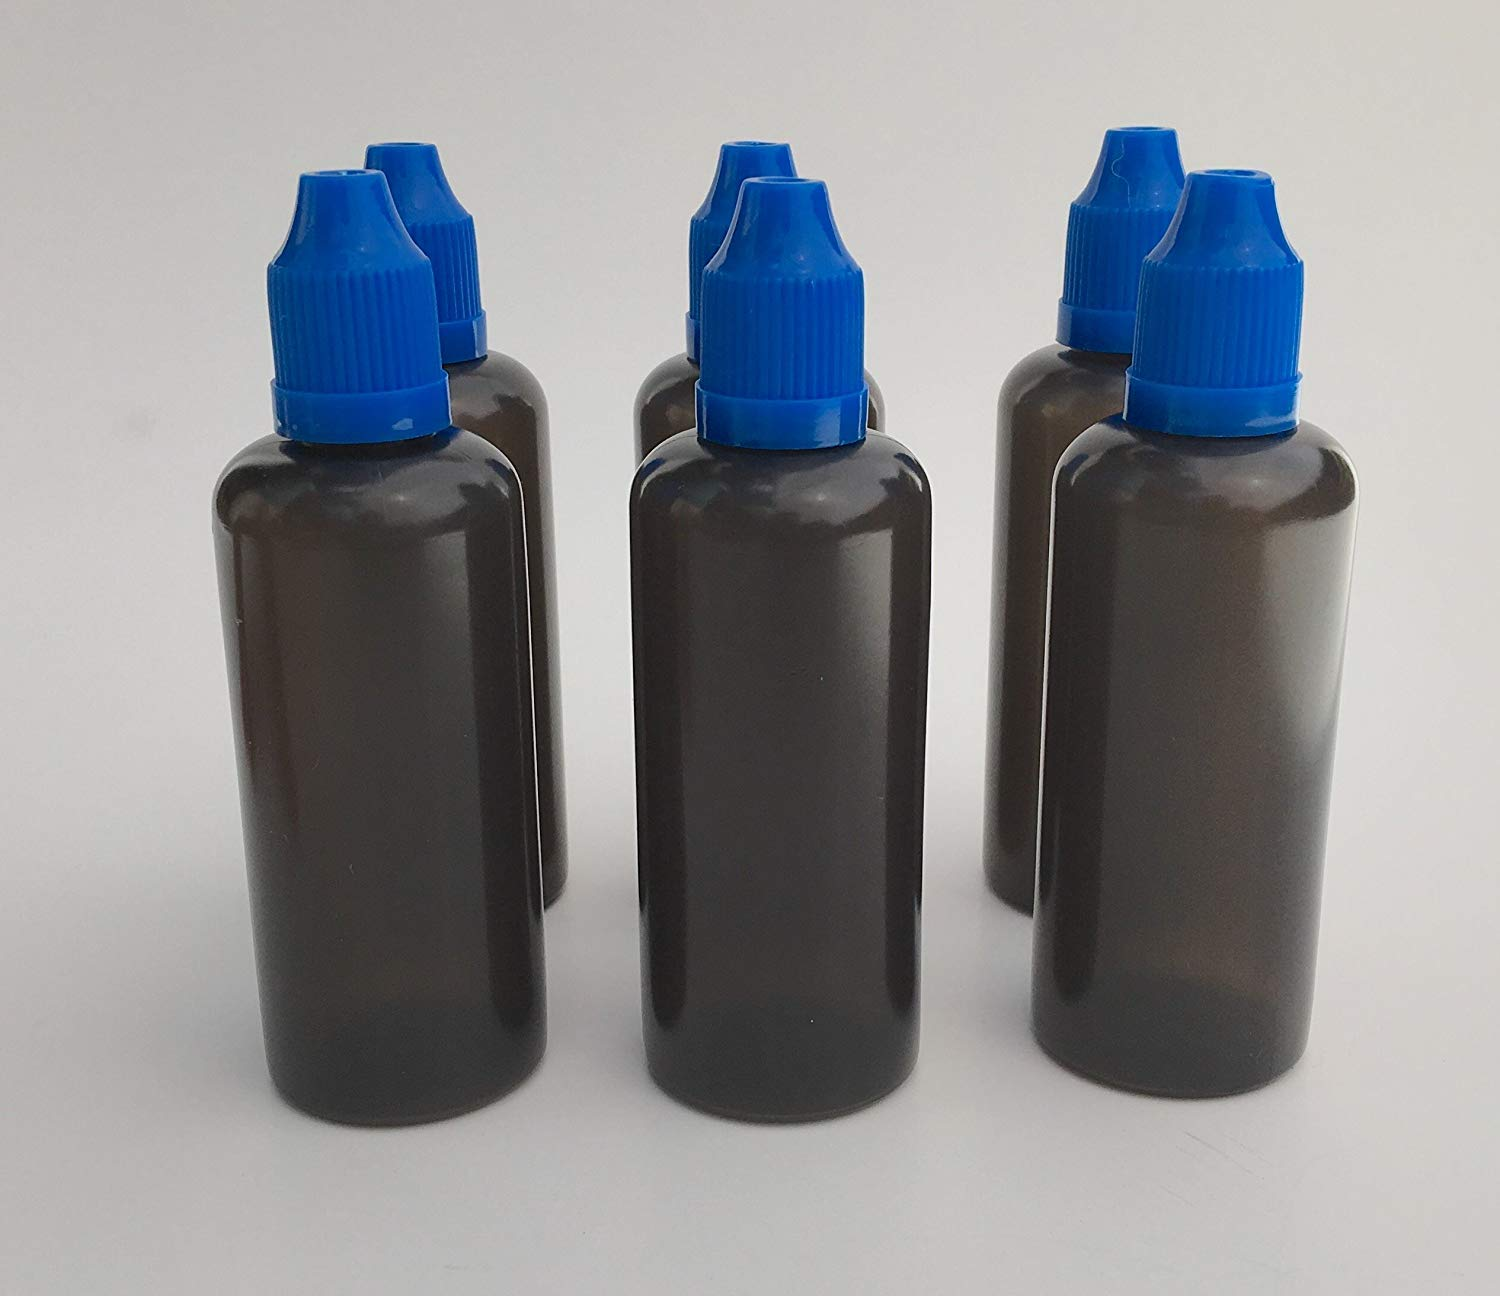 U-Need-A-Bottle (6) Pack 2 oz Dark Black Plastic Bottle - 60 ml - BPA FREE - LDPE PE - EASY SQUEEZE Liquid Dropper Tip - Small Empty ROUND, Best For Tincture E Cig & Juice w/ Childproof Cap (Blue)